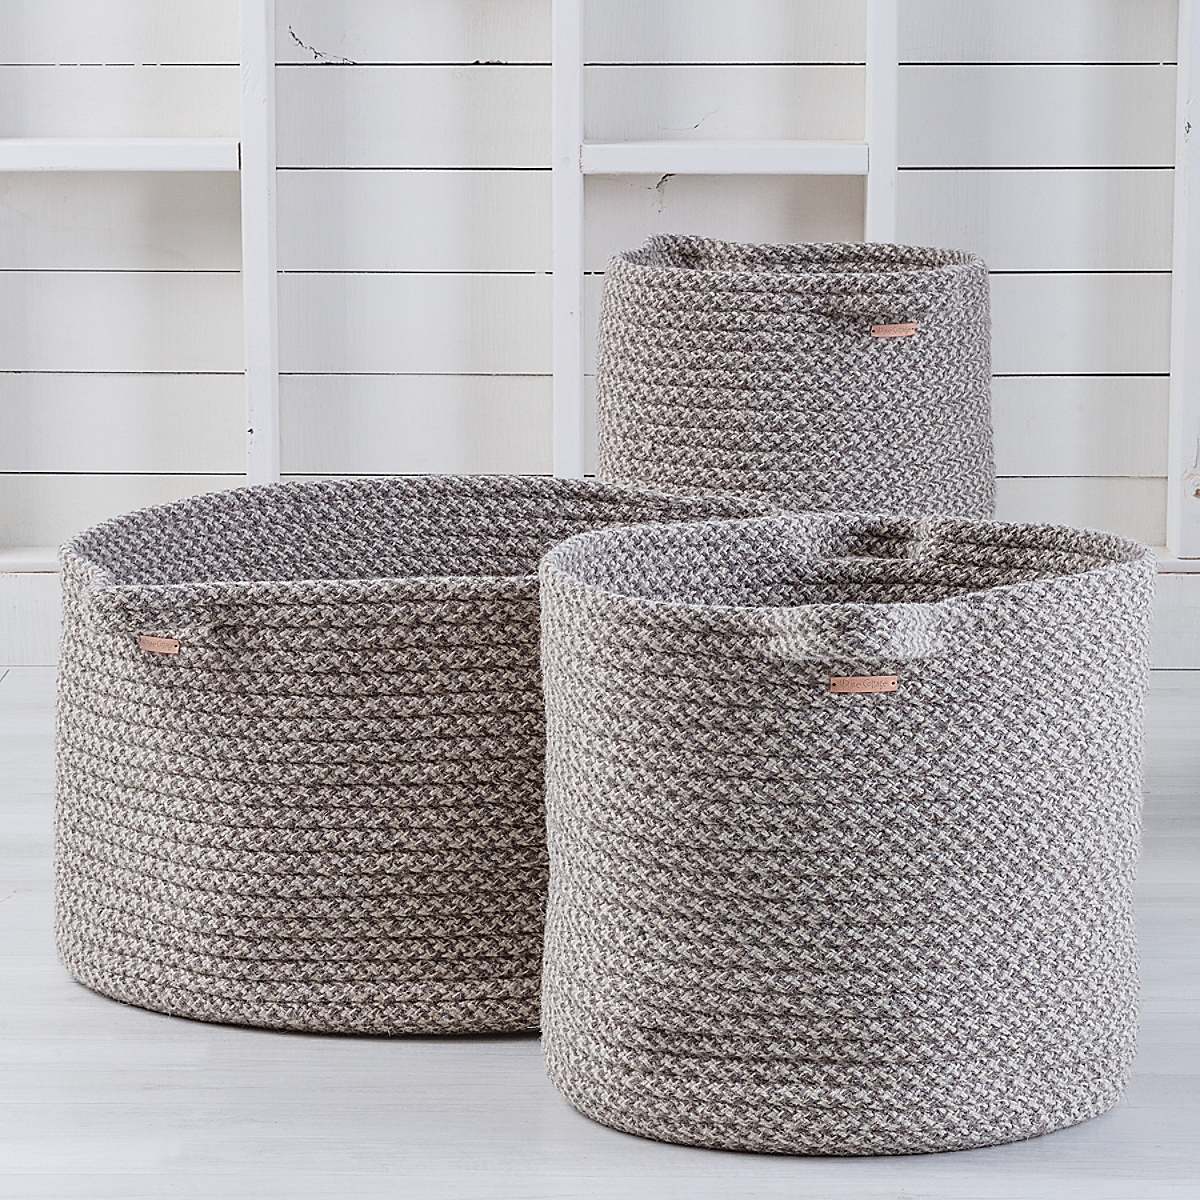 Braided Wool Basket - Houndstooth